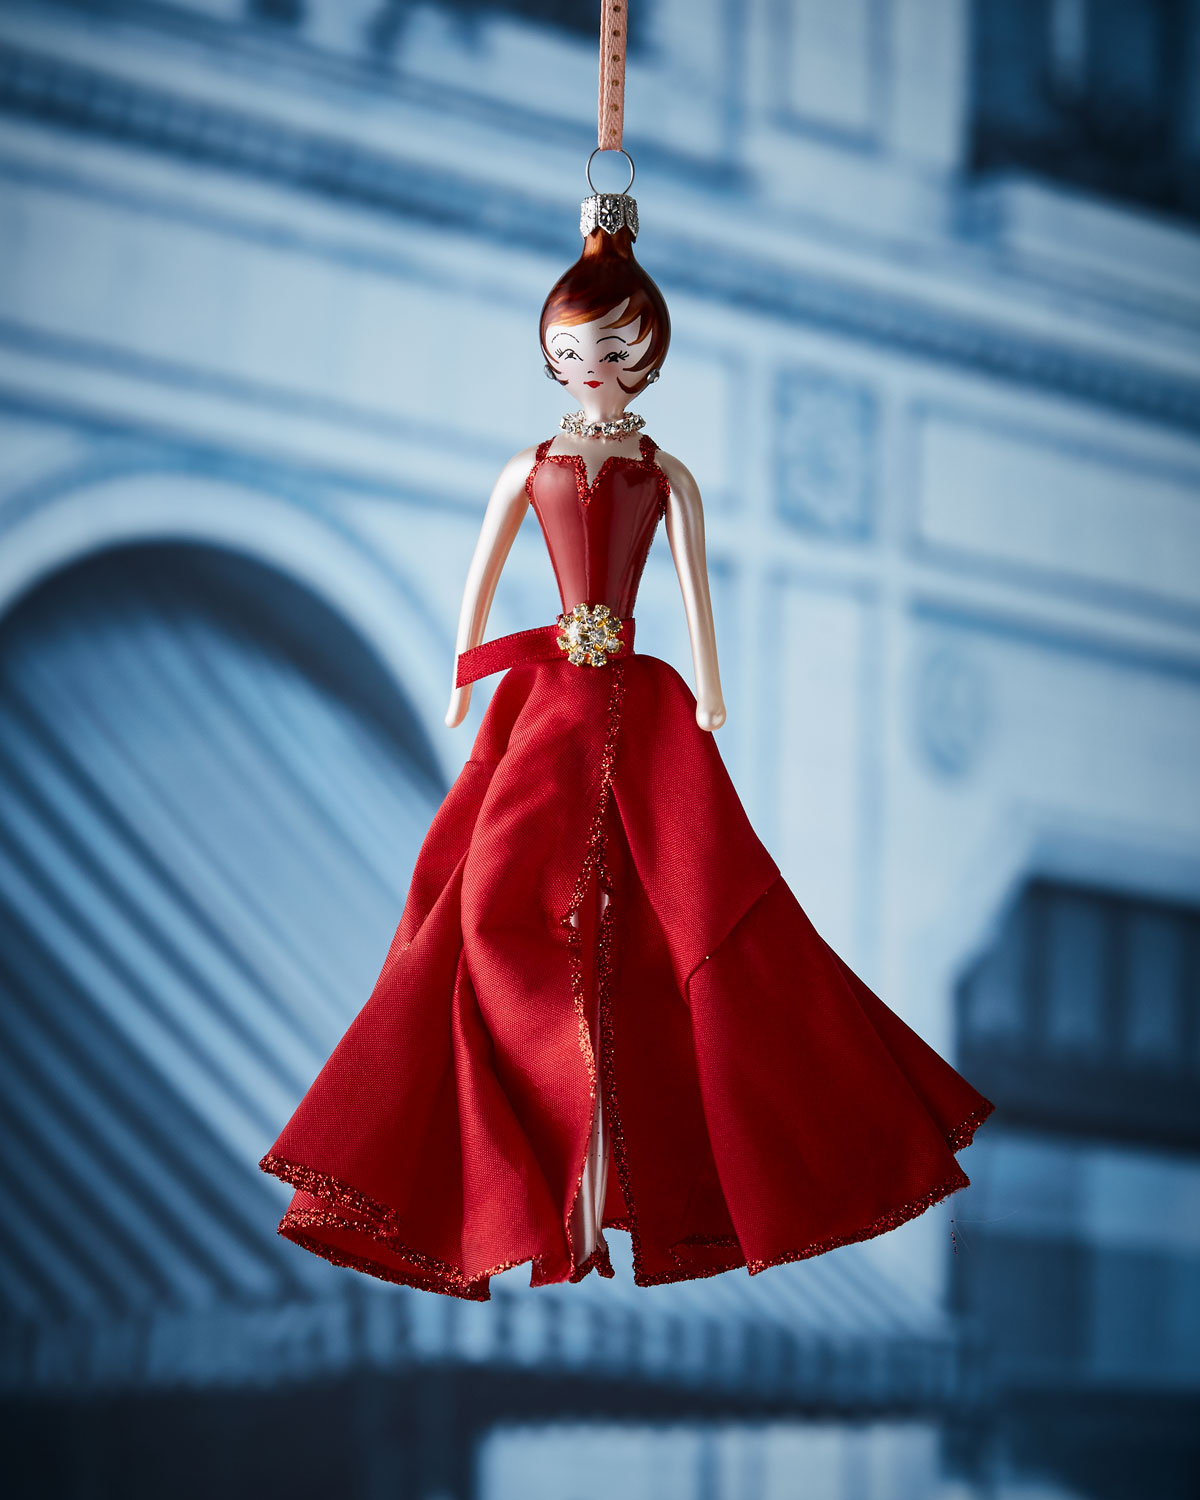 Julia in Burgundy Gown Christmas Ornament